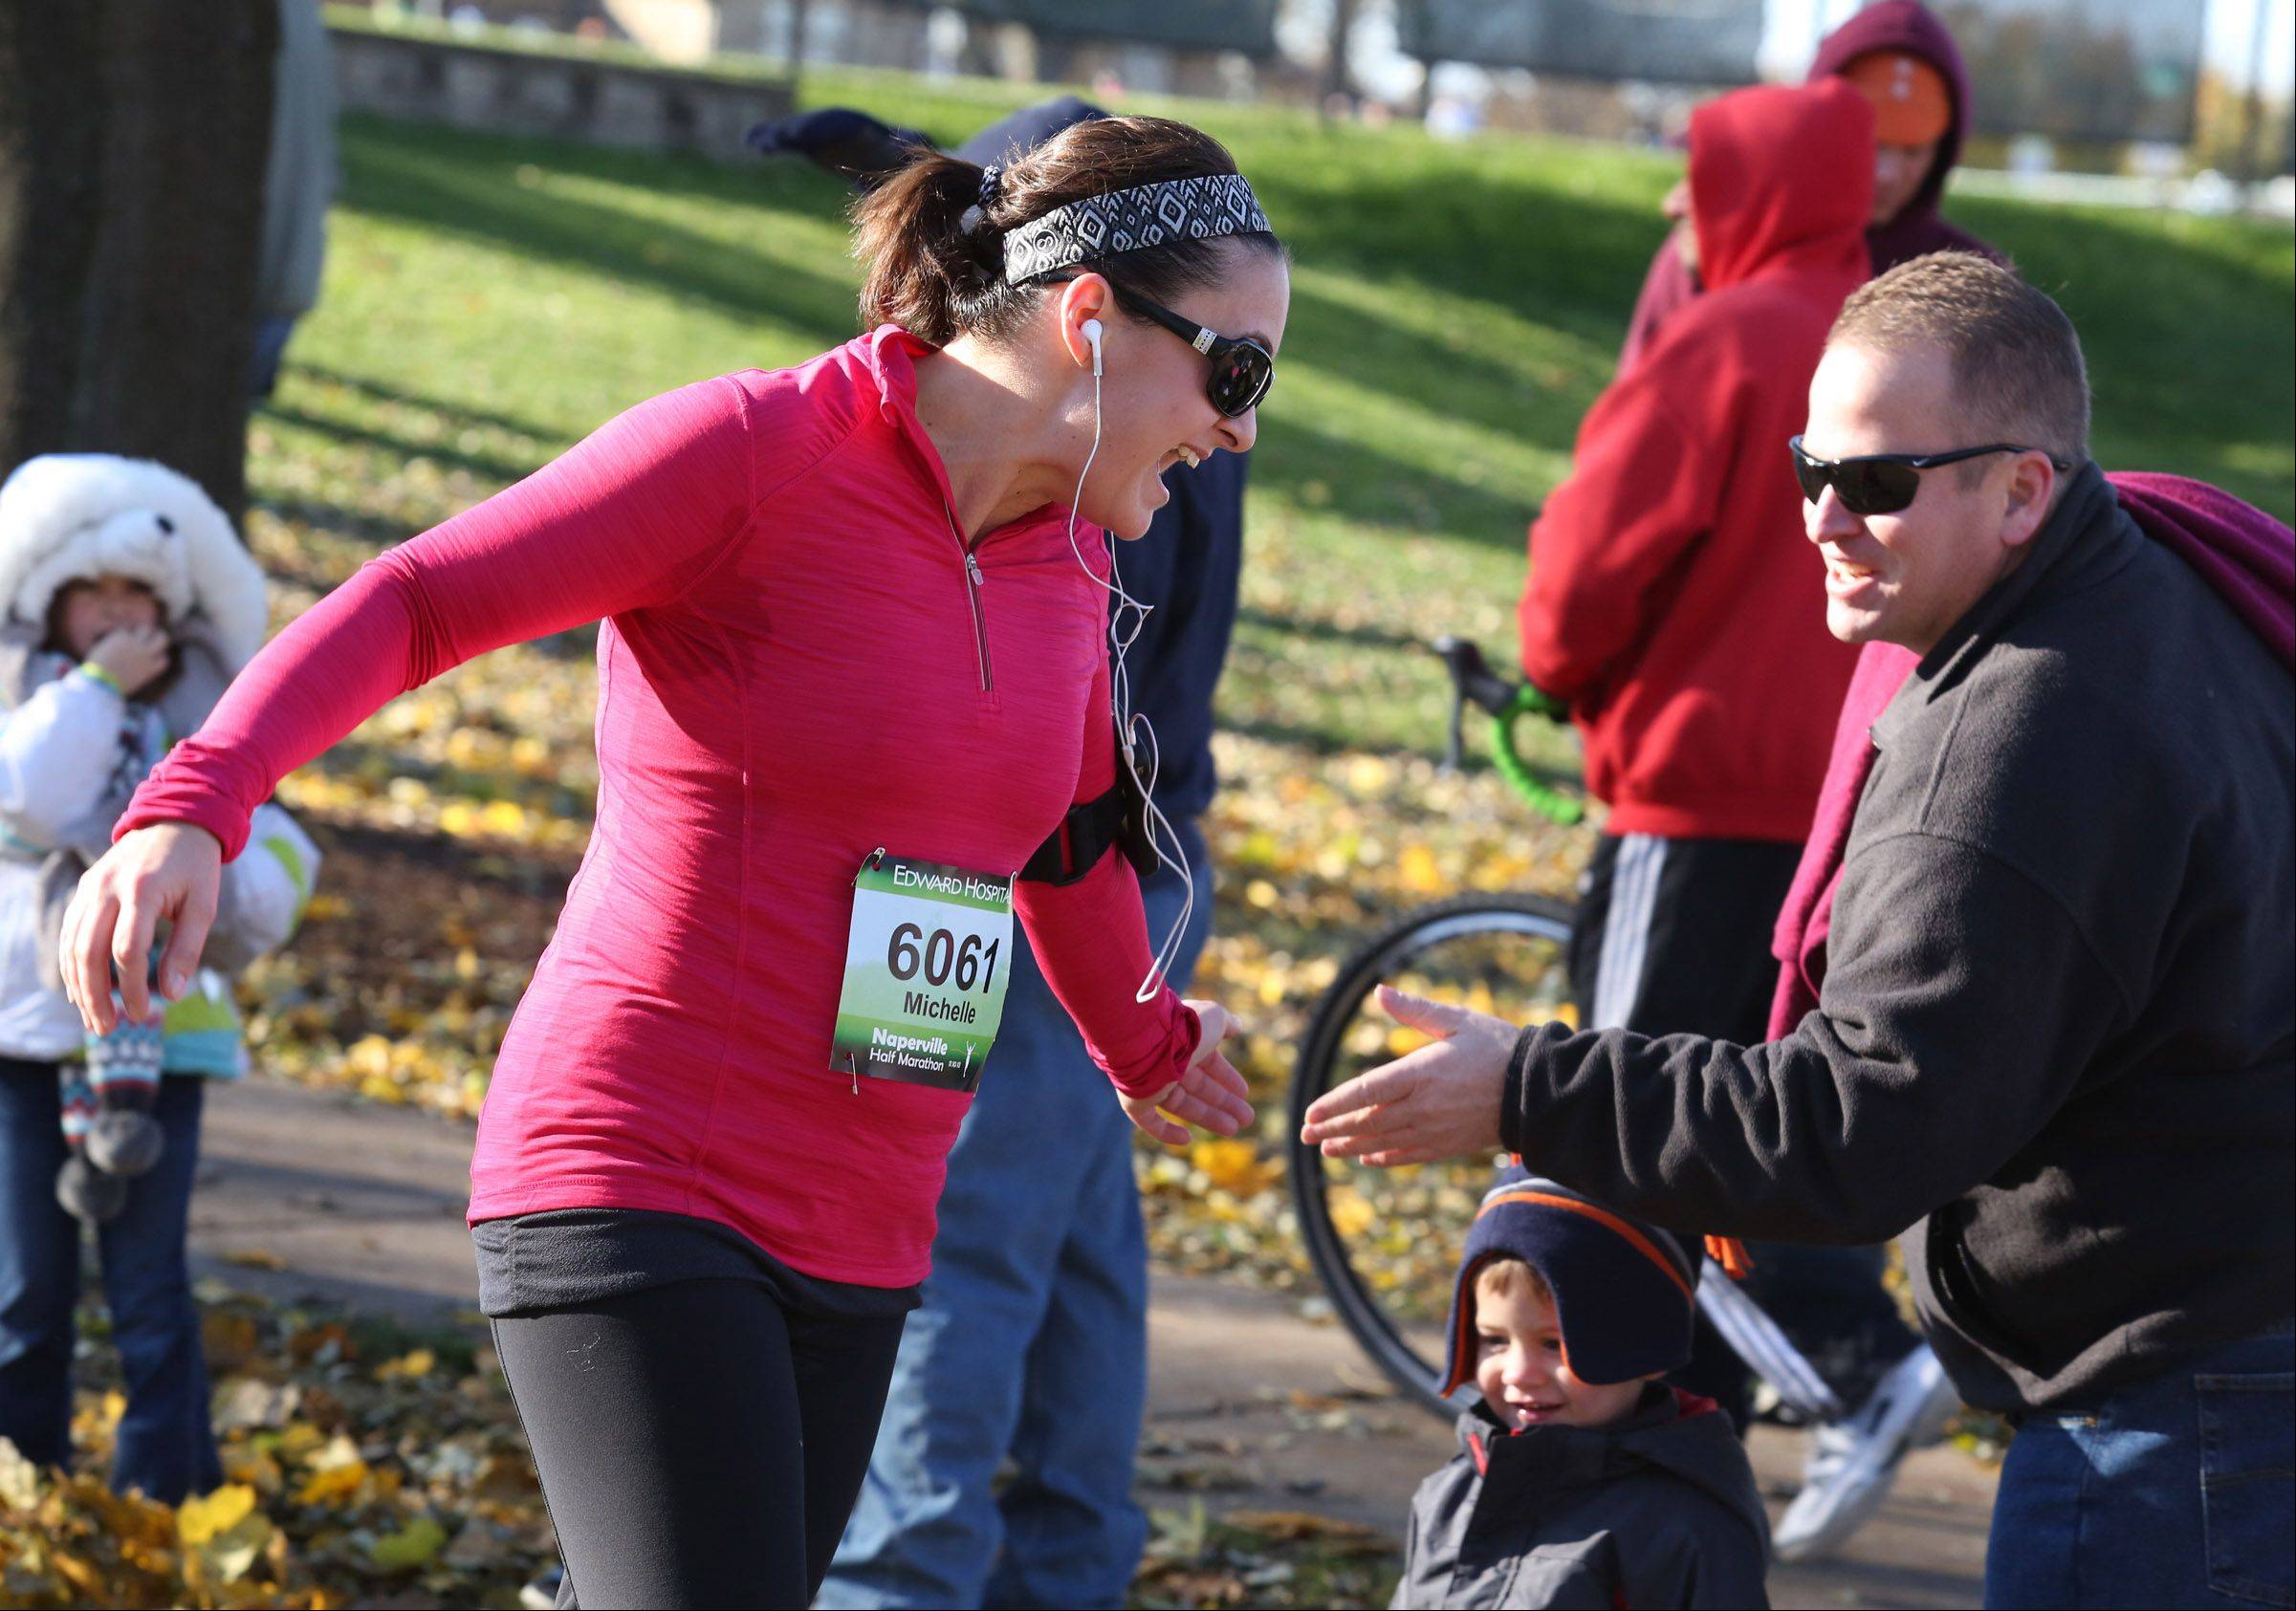 Michelle Huber of Elmhurst gets a hand from her husband, Bill, just before crossing the finish line in the Edward Hospital Naperville half marathon on Sunday, November 10, 2013.